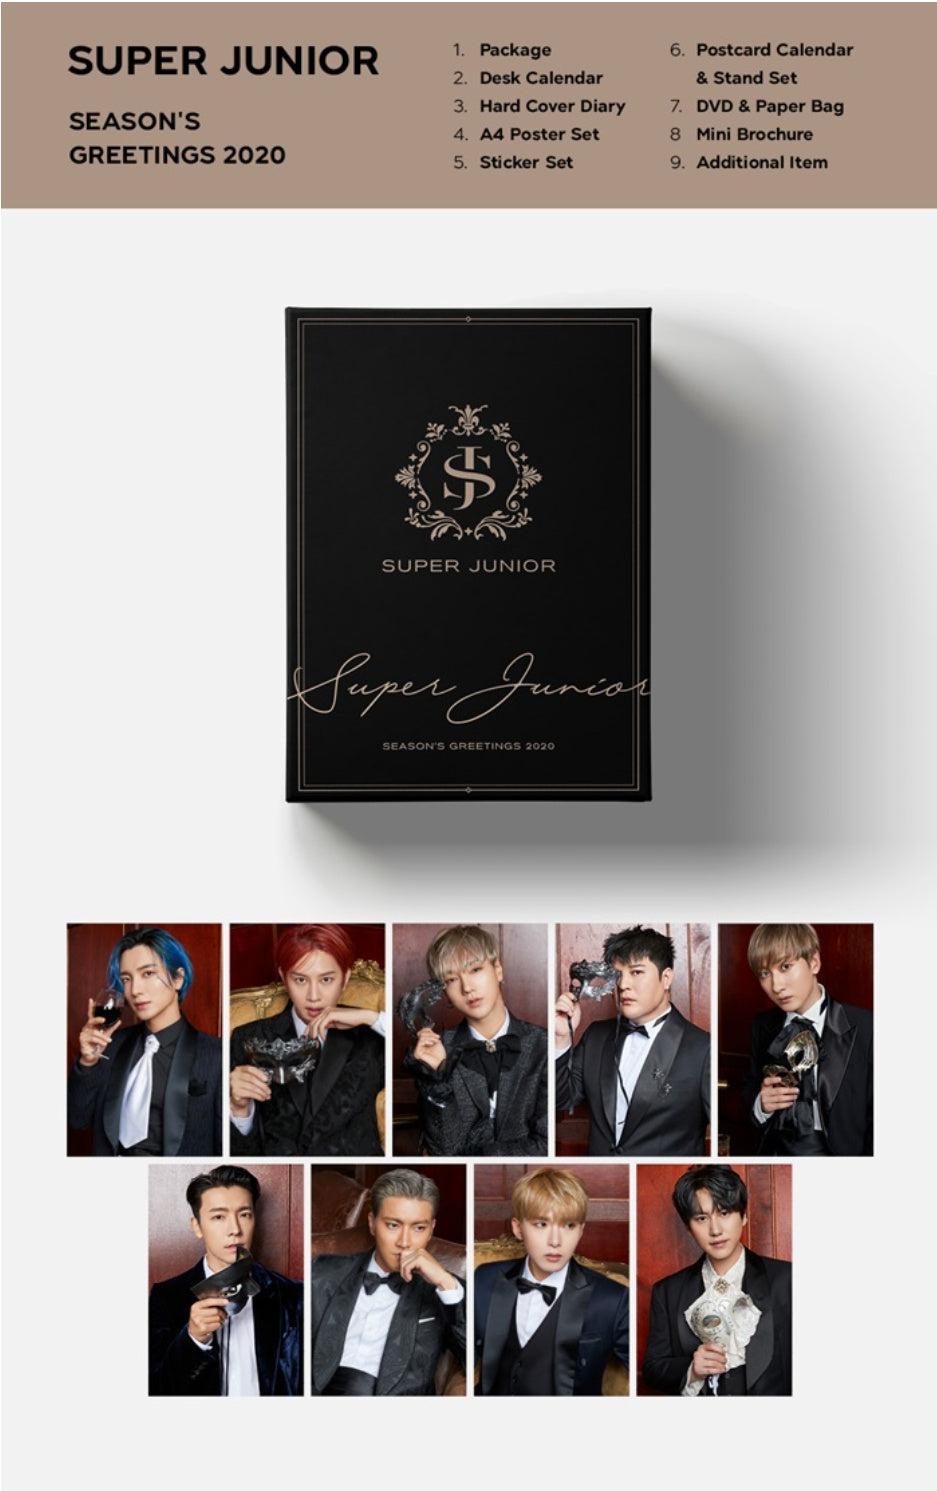 Super Junior - 2020 Season's Greetings - Pre-Order